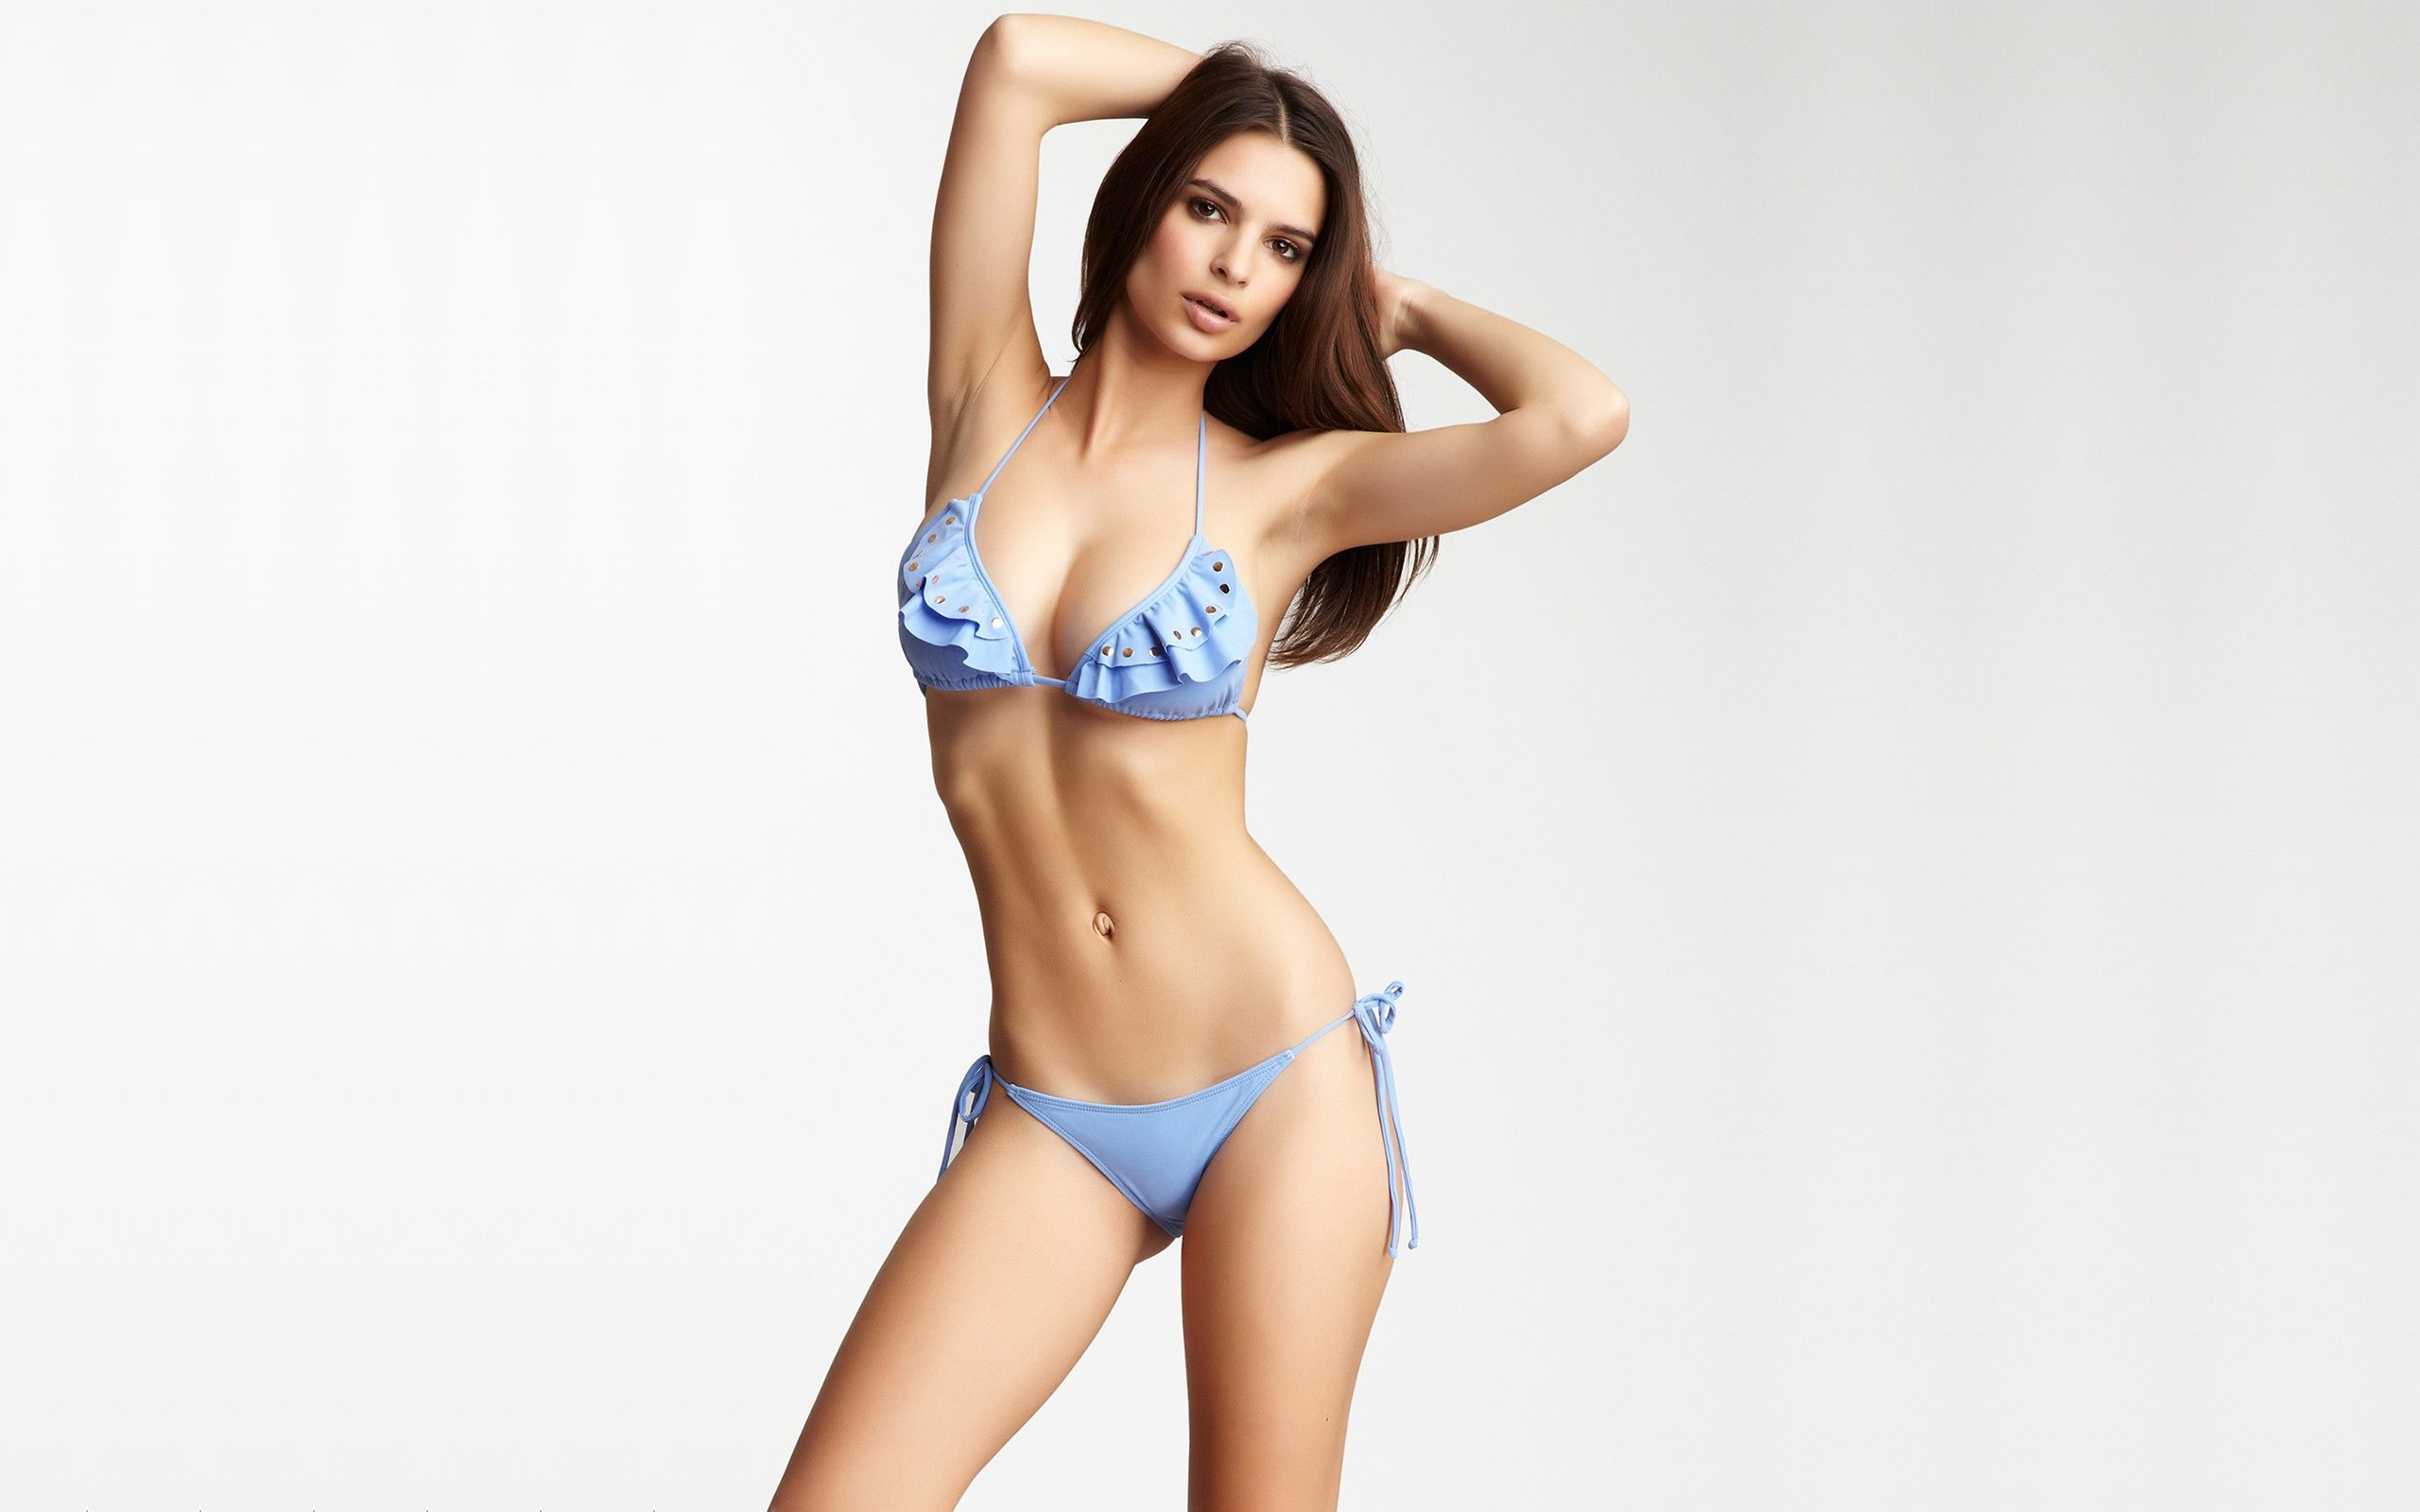 Emily Ratajkowski Wallpapers Images Photos Pictures Backgrounds